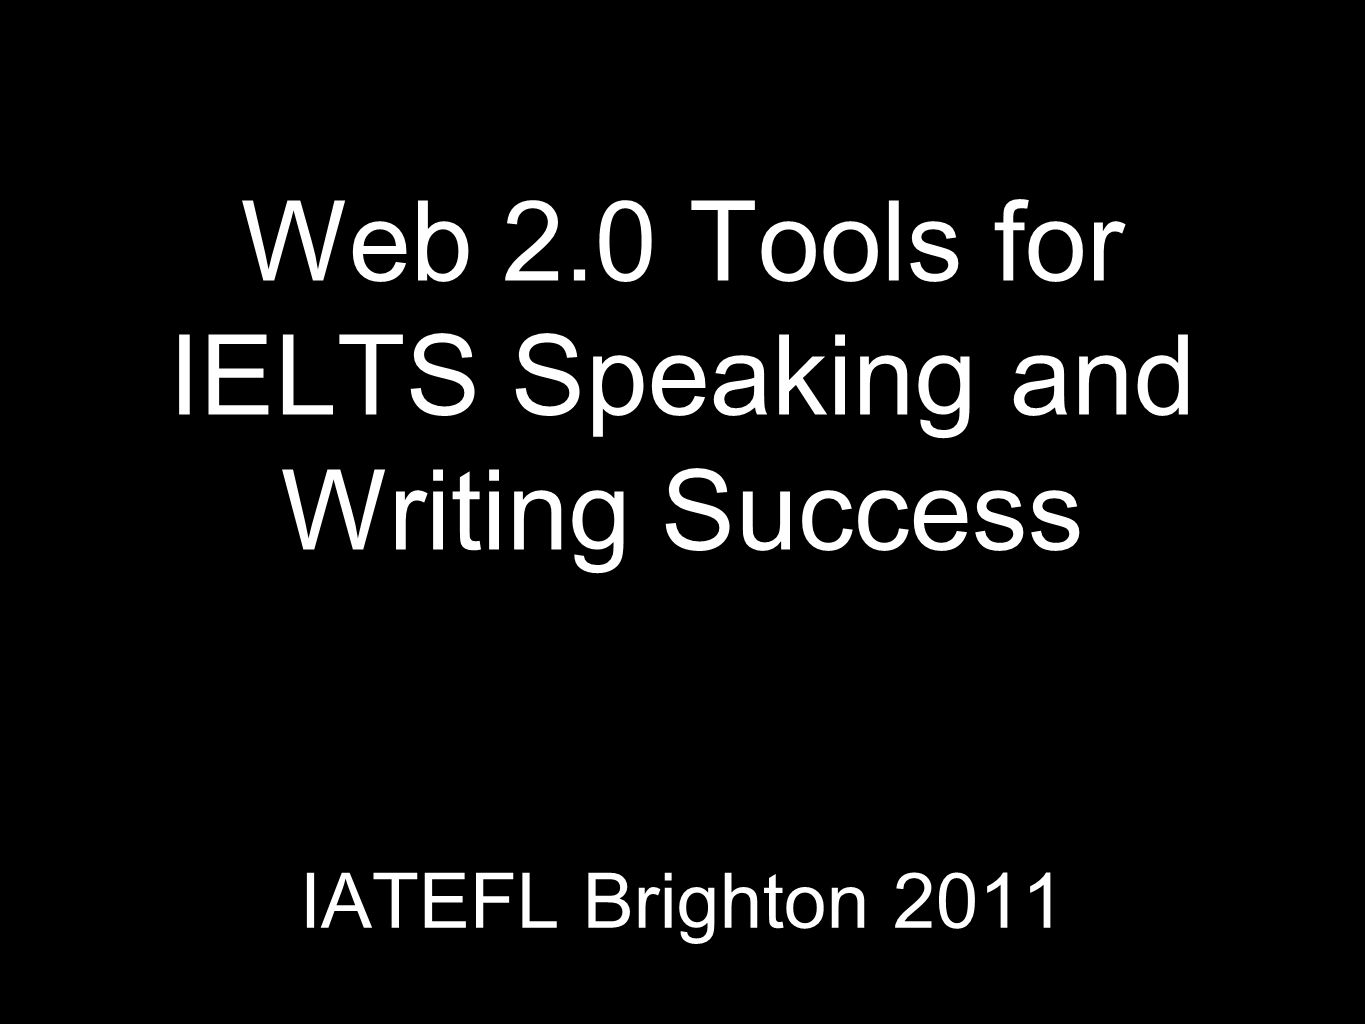 Web 2.0 Tools for IELTS Speaking and Writing Success IATEFL Brighton 2011